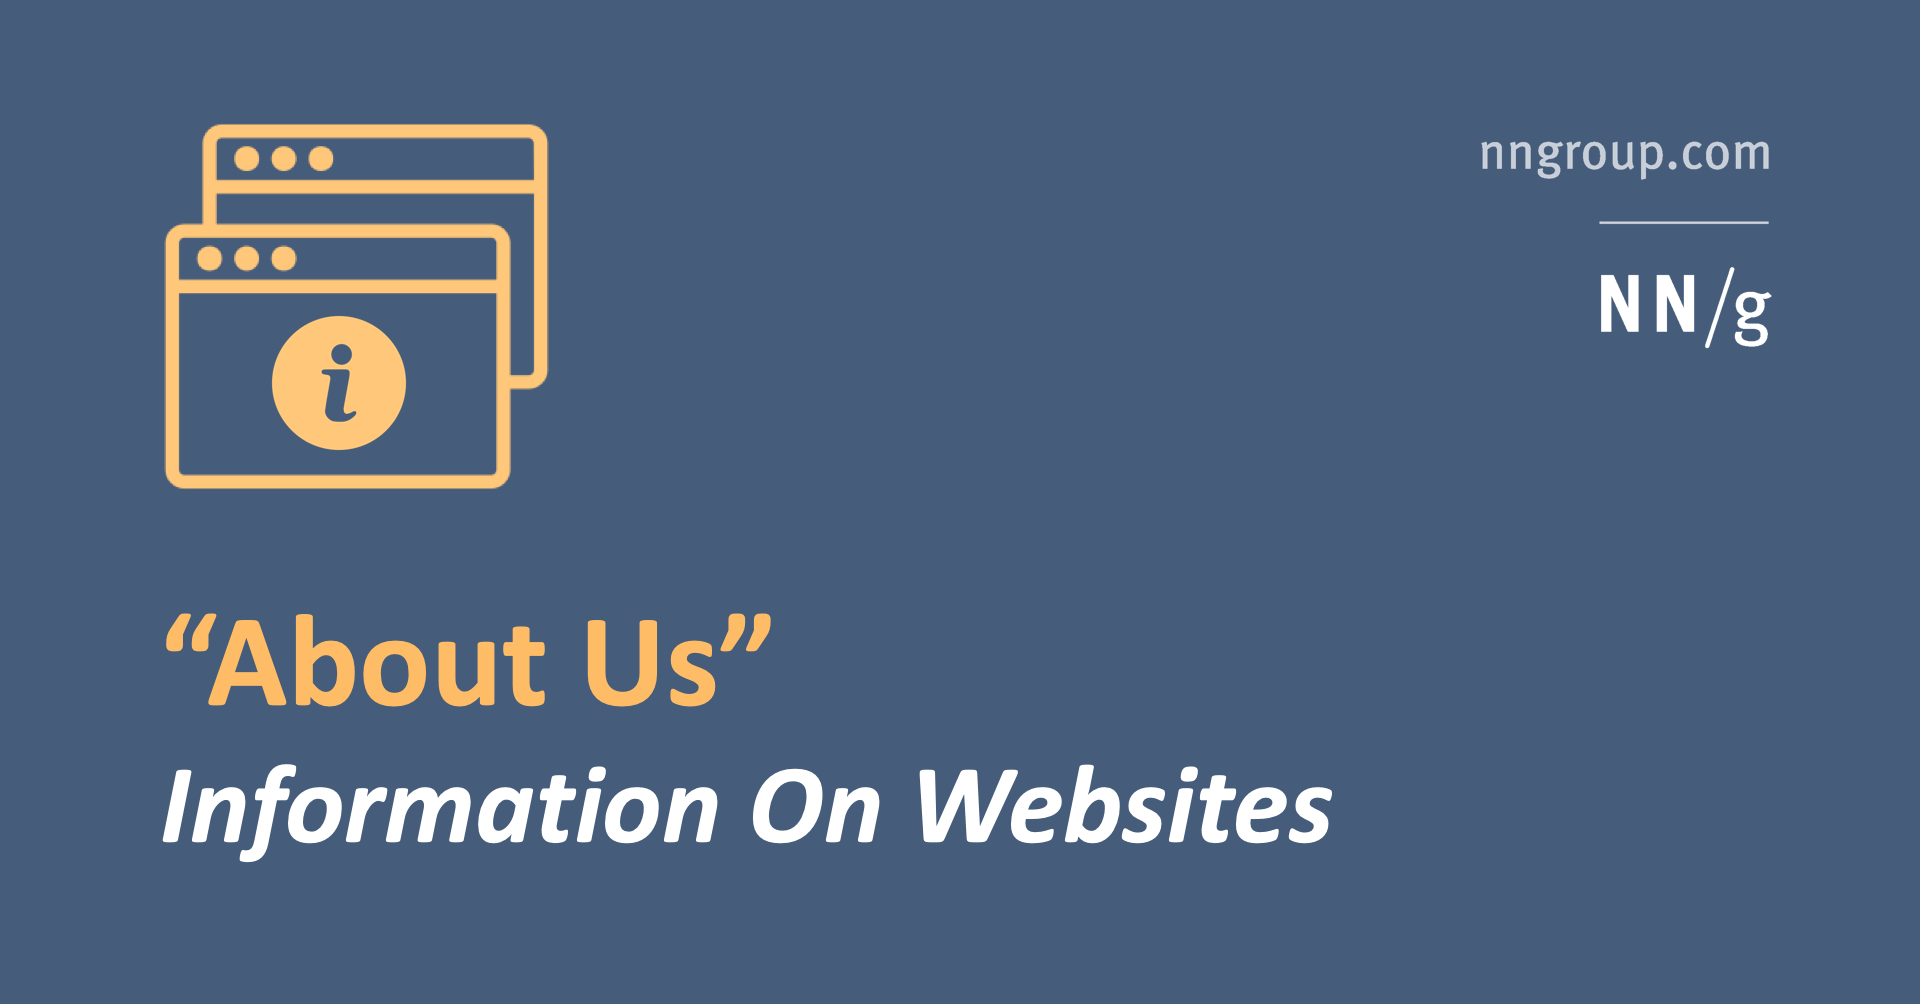 Datation site Web verbiage